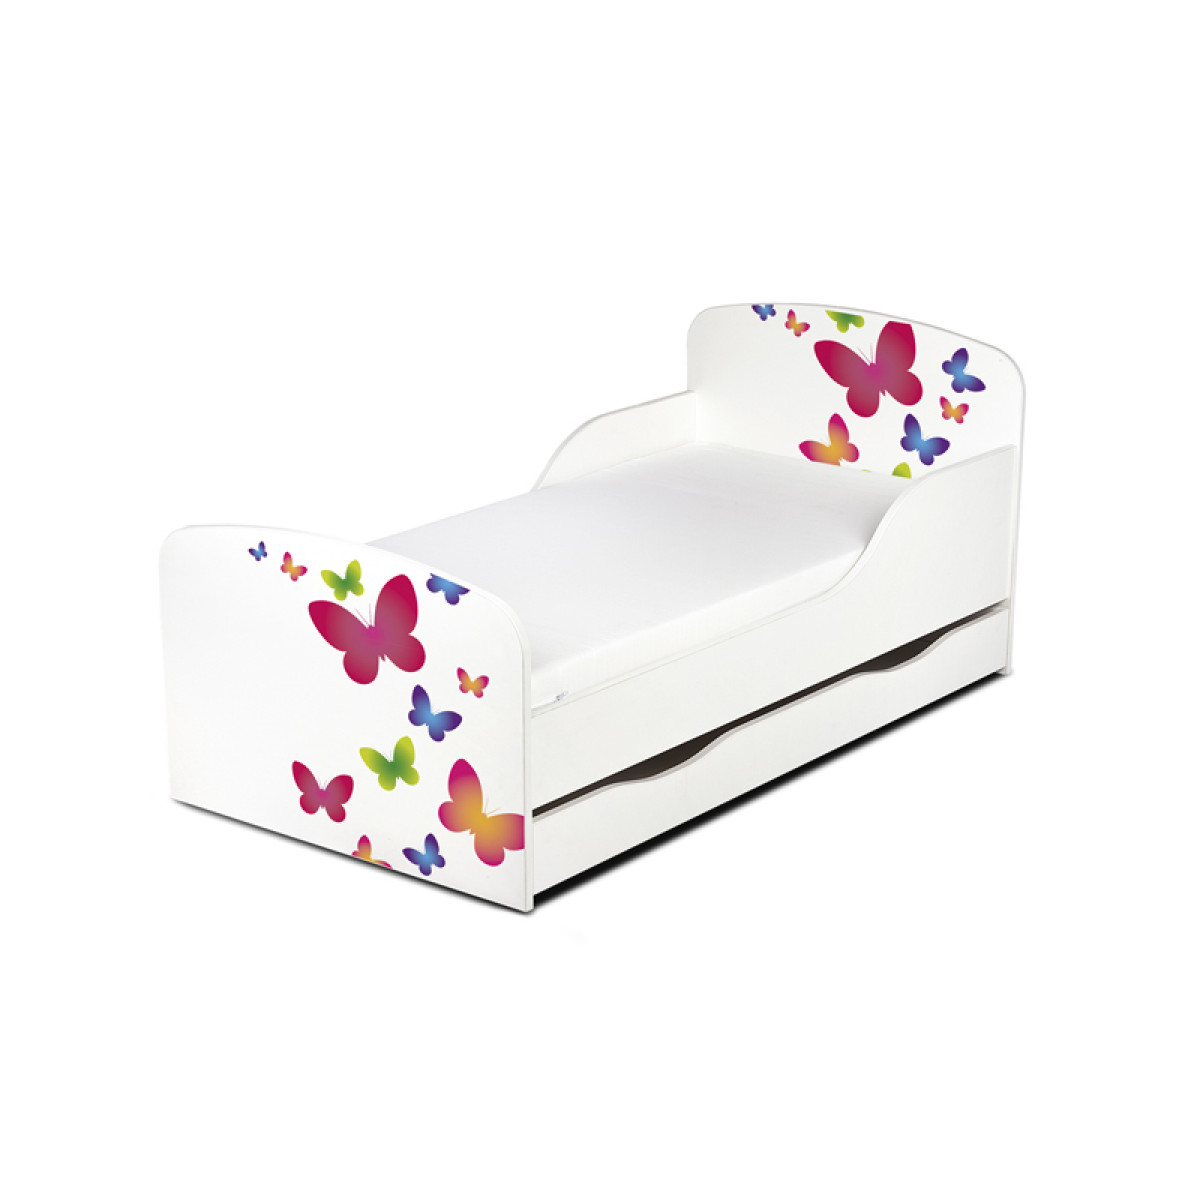 PriceRightHome Butterflies Toddler Bed with Underbed Storage